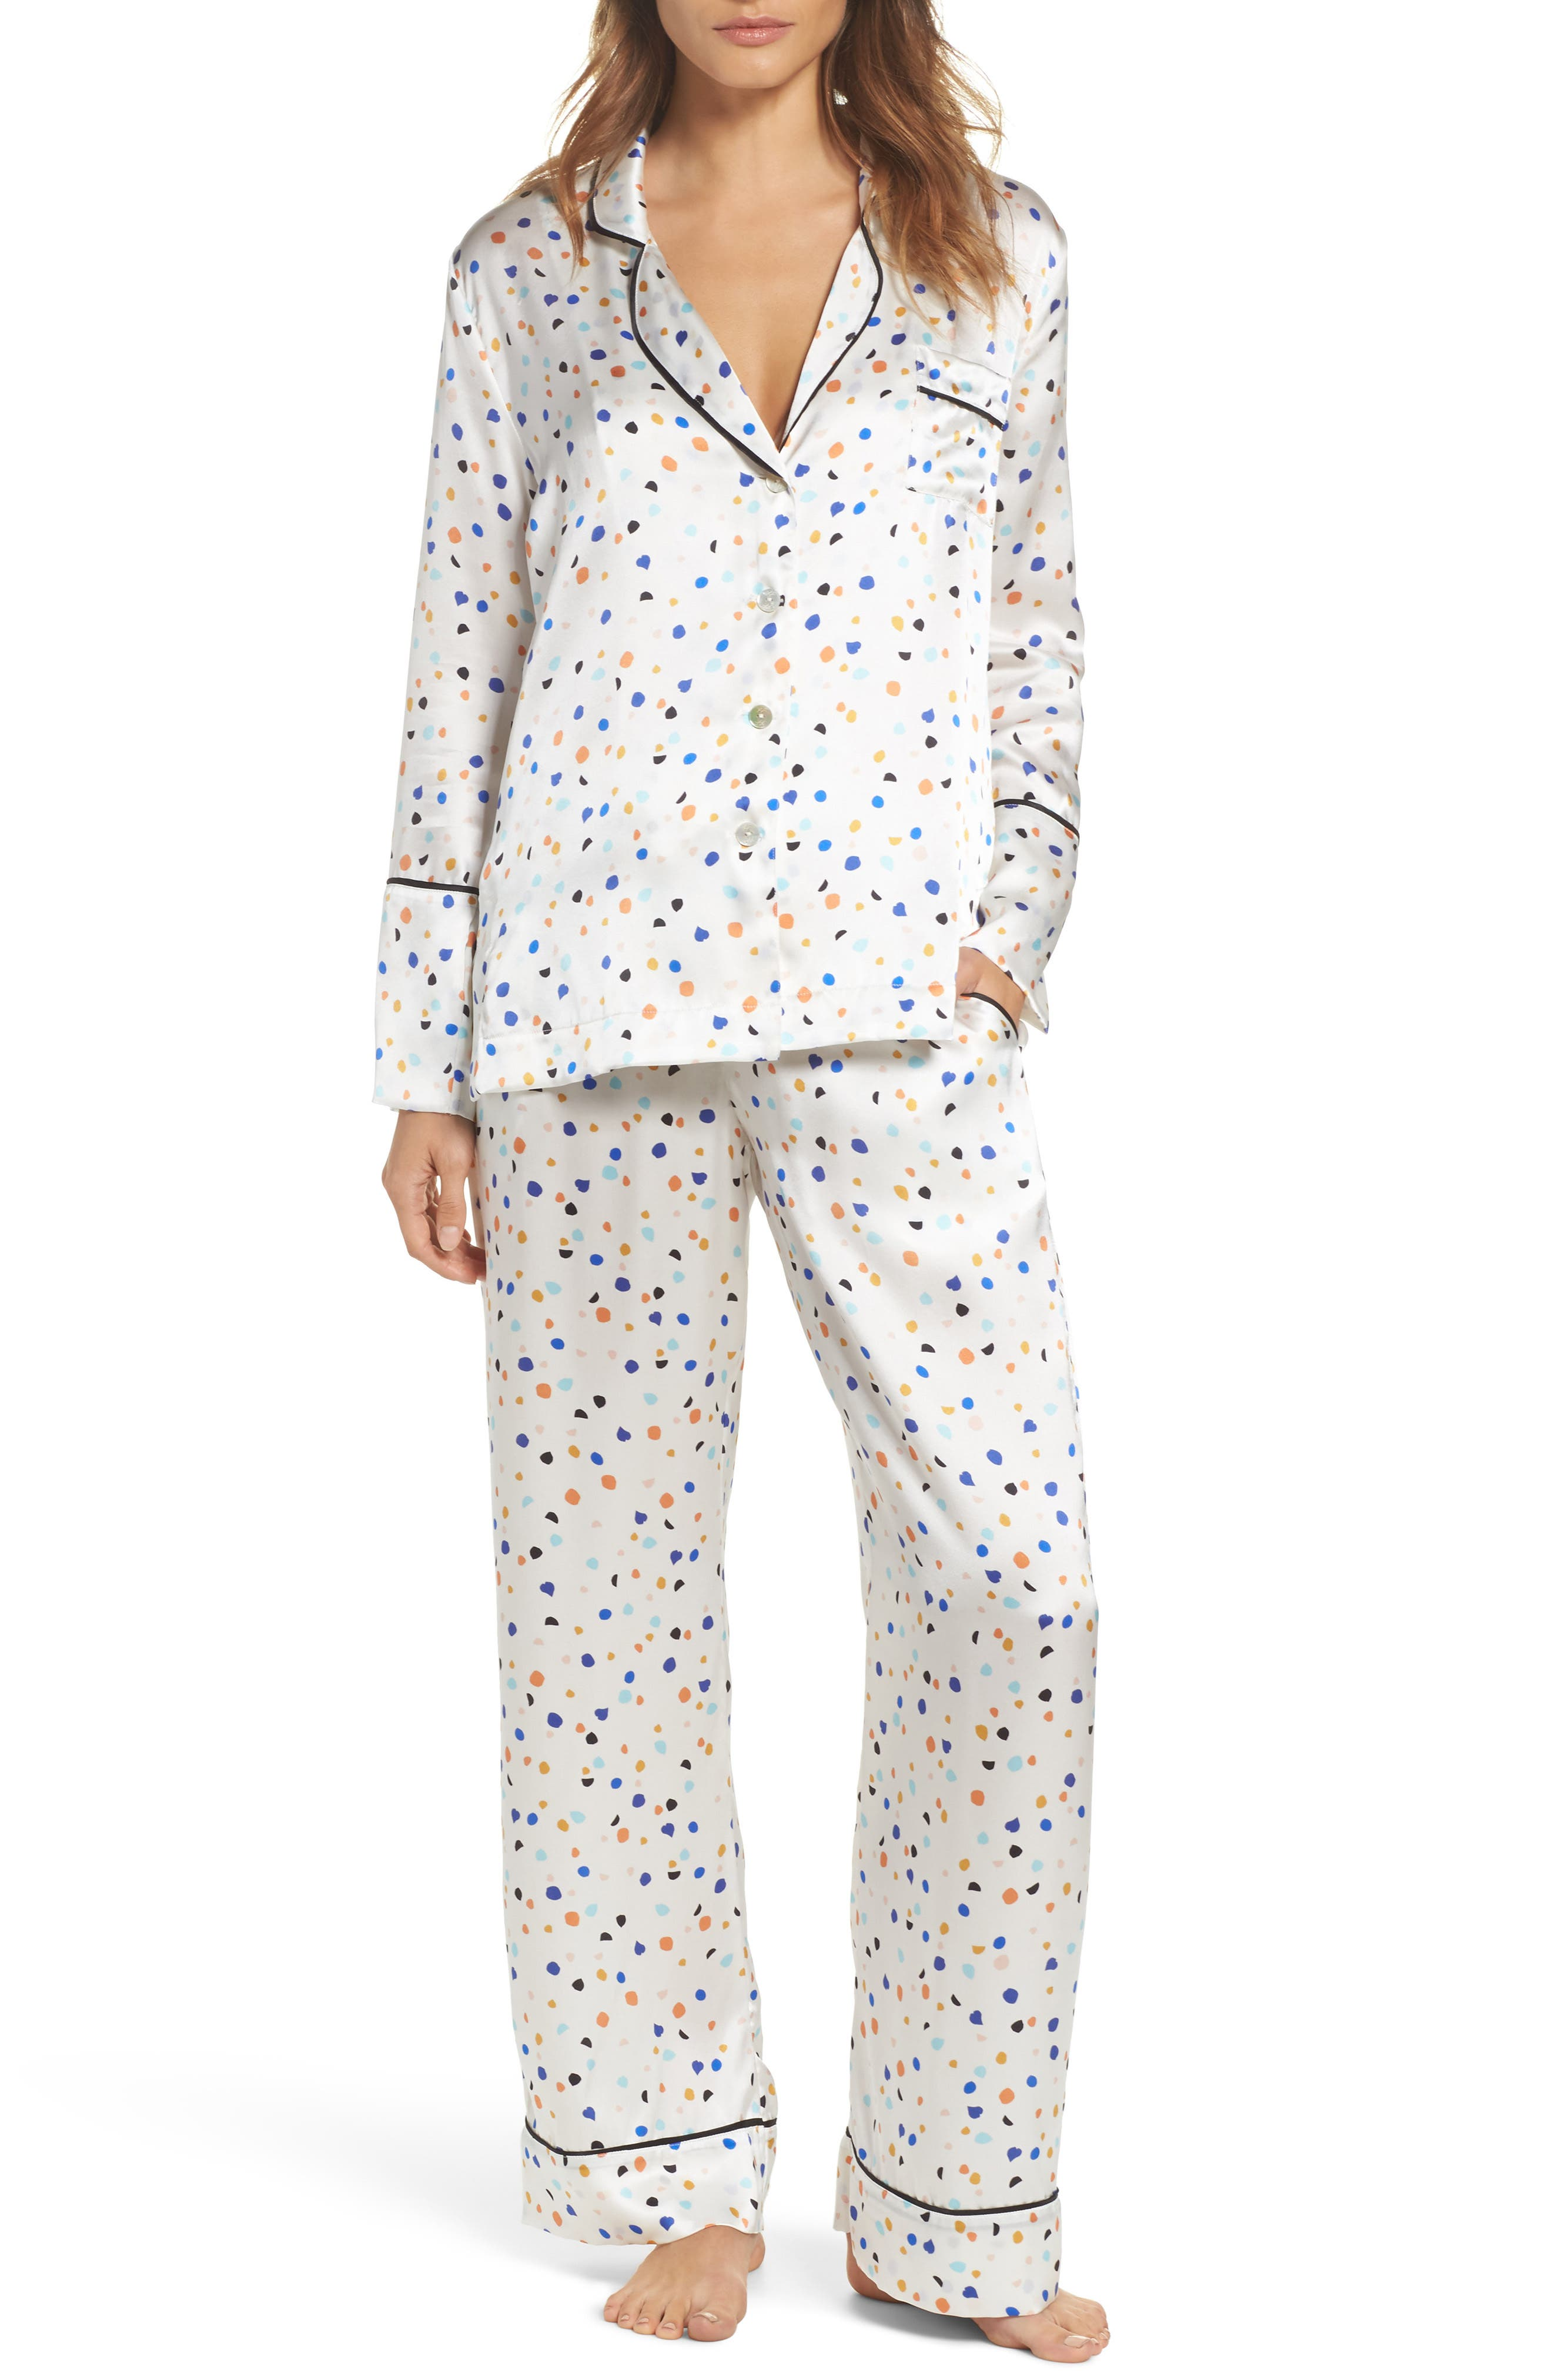 Lisbon Pebble Evie Silk Pajamas,                             Main thumbnail 1, color,                             100